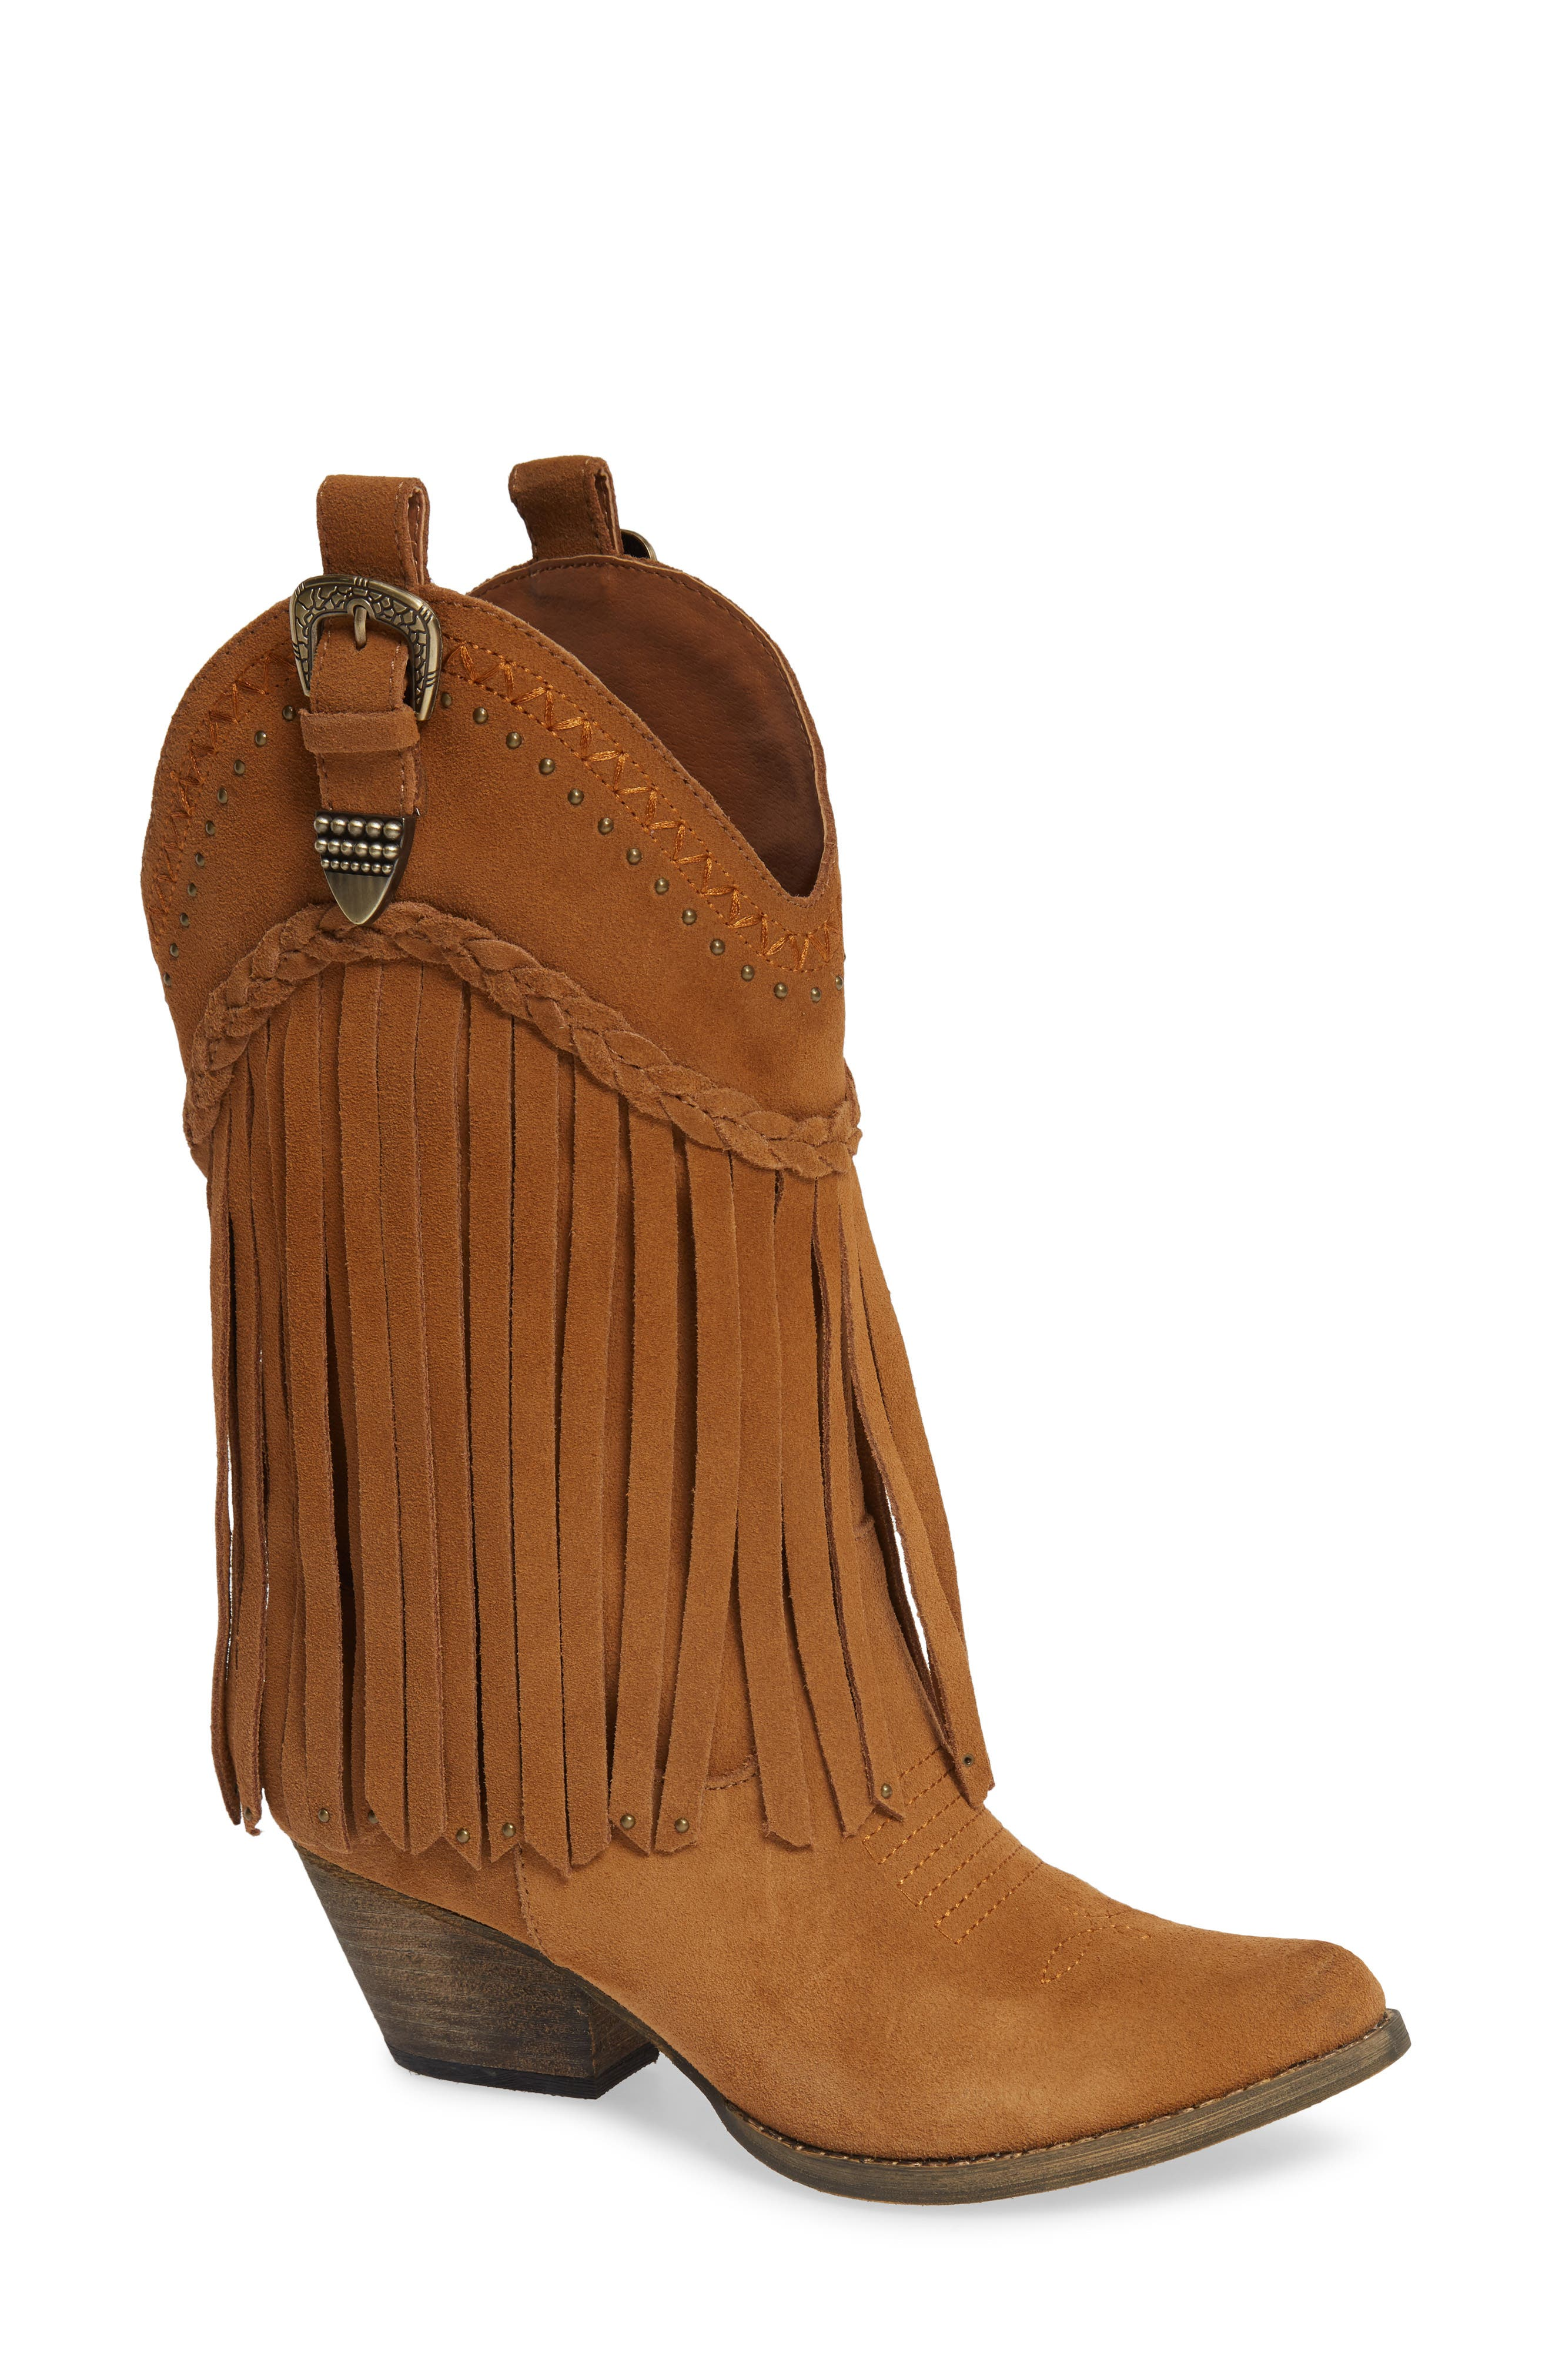 Vintage Boots, Granny Boots, Retro Boots Womens Very Volatile Anderson Fringe Western Boot Size 8 M - Brown $89.99 AT vintagedancer.com